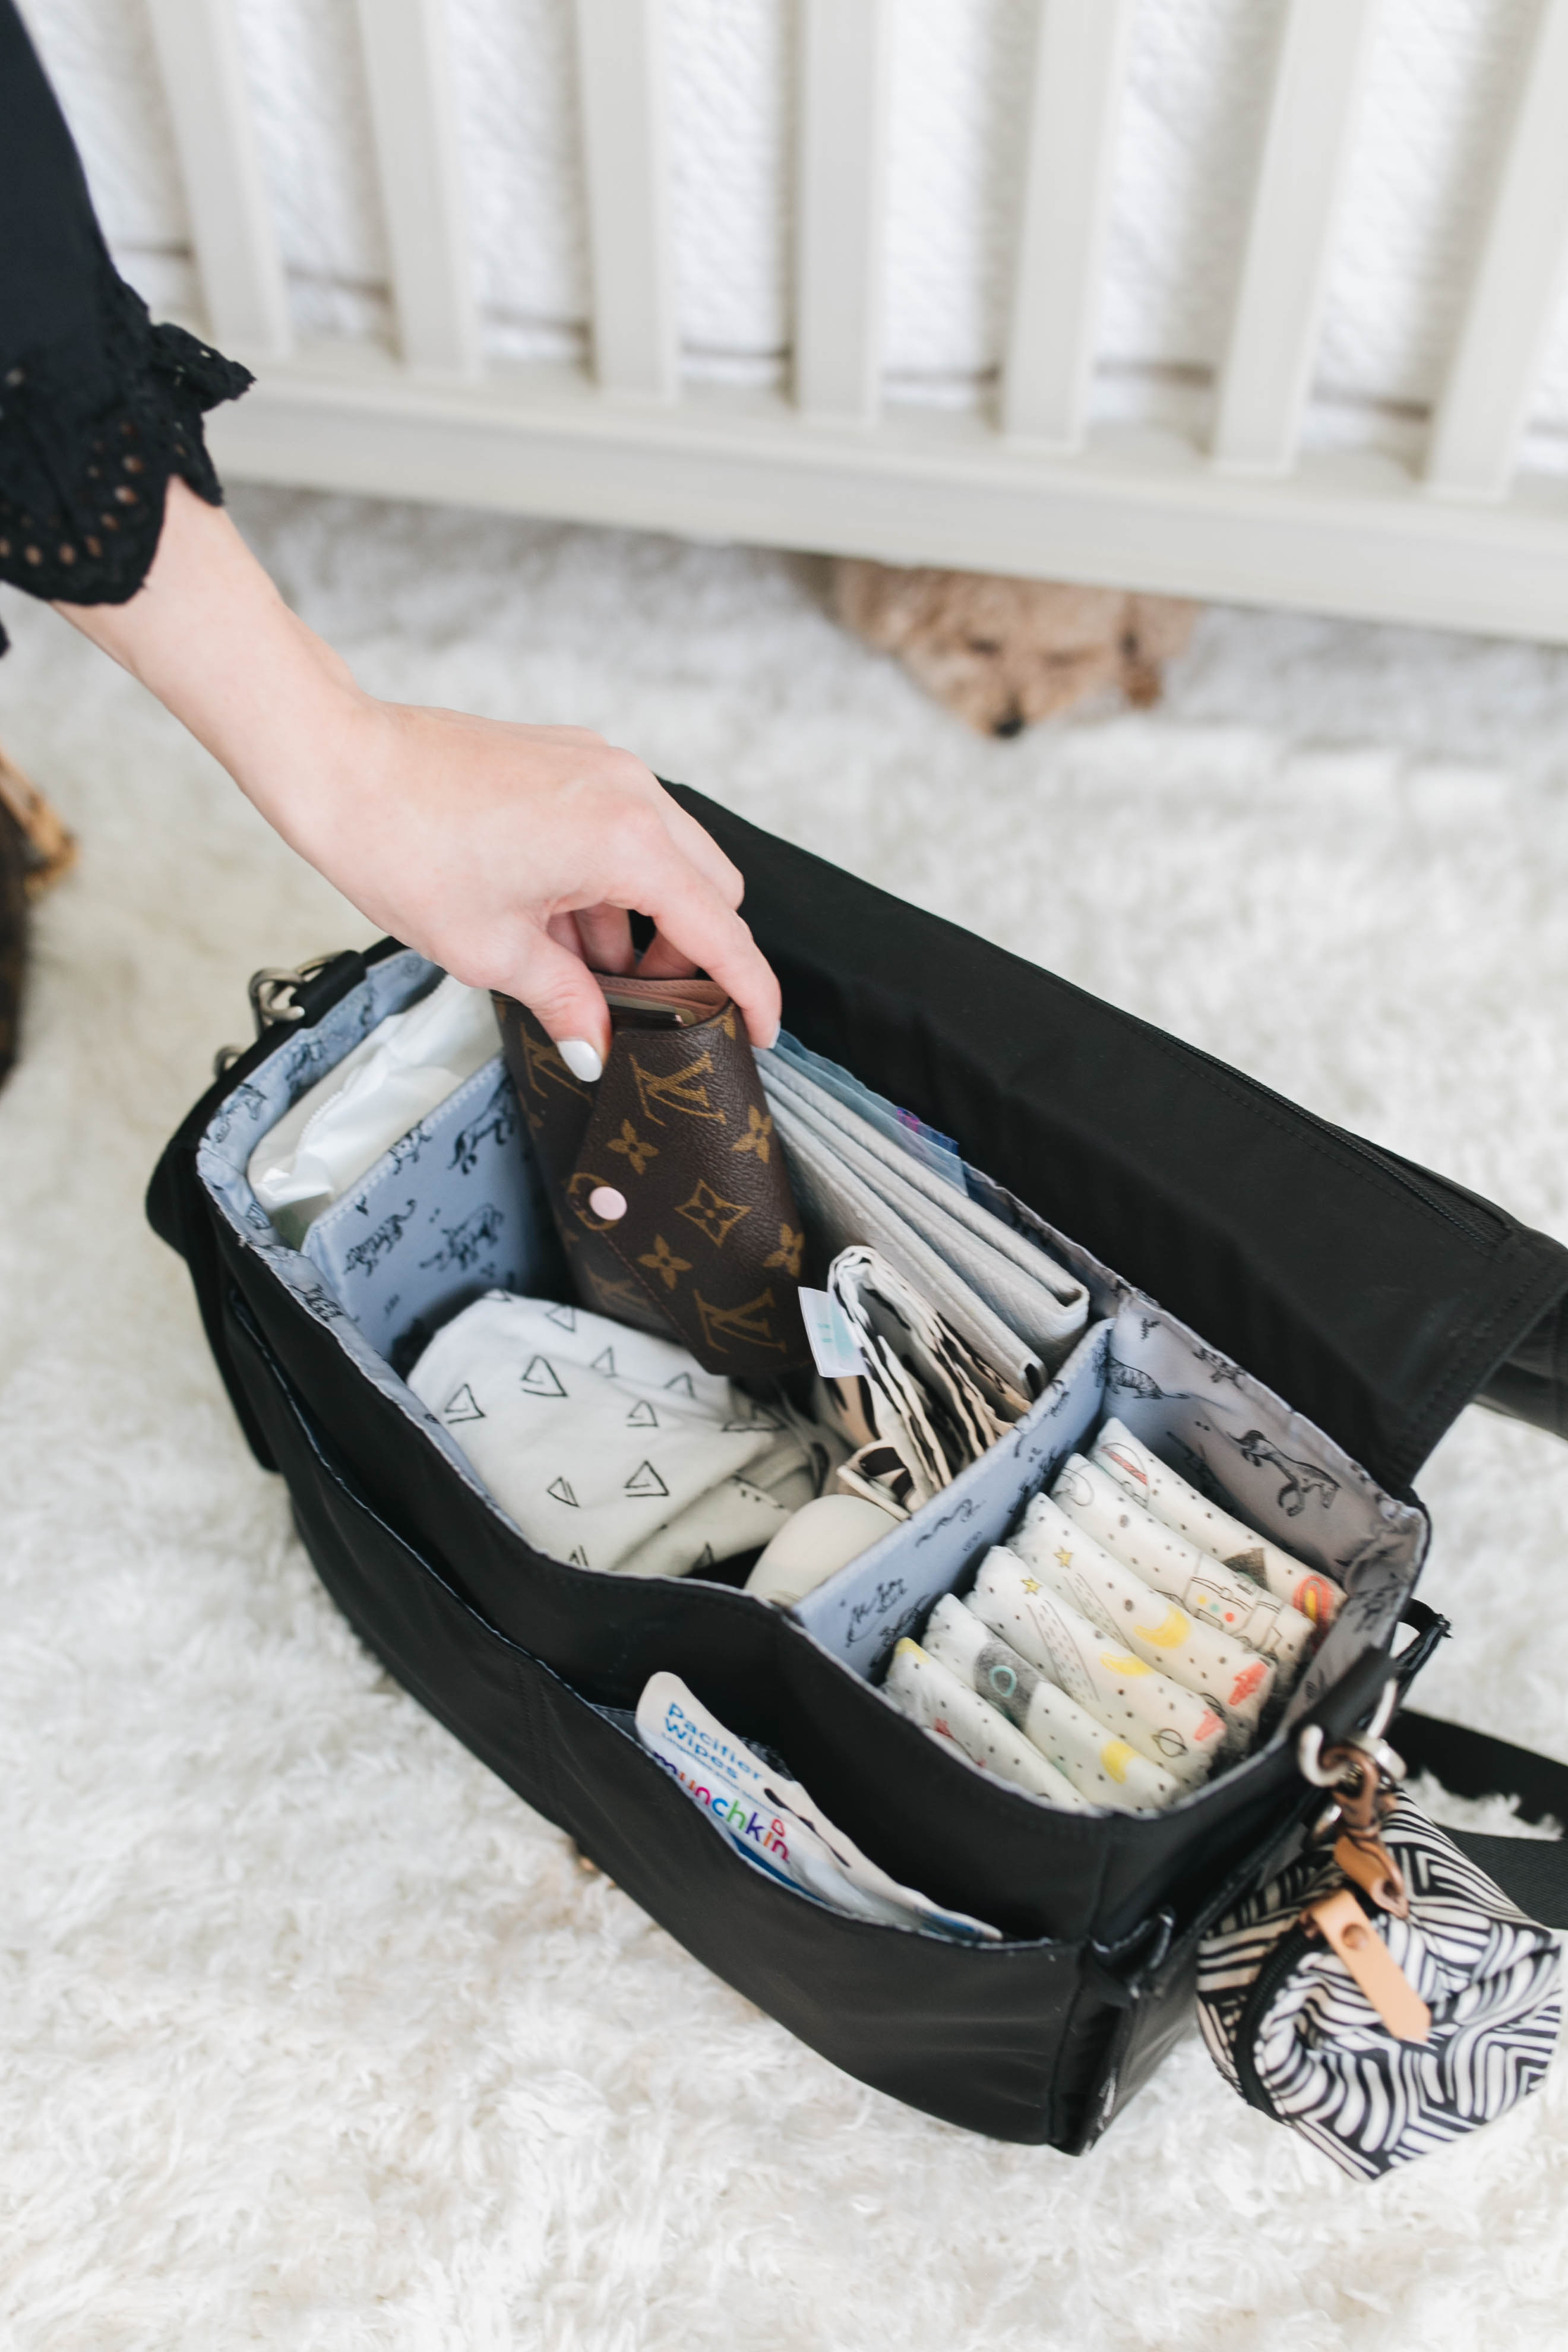 53c95eabc4ba The TwelveLittle Stroller caddy is easily my favorite because of just how  functional and simple it is. It is a structured bag that has plenty of room  for ...